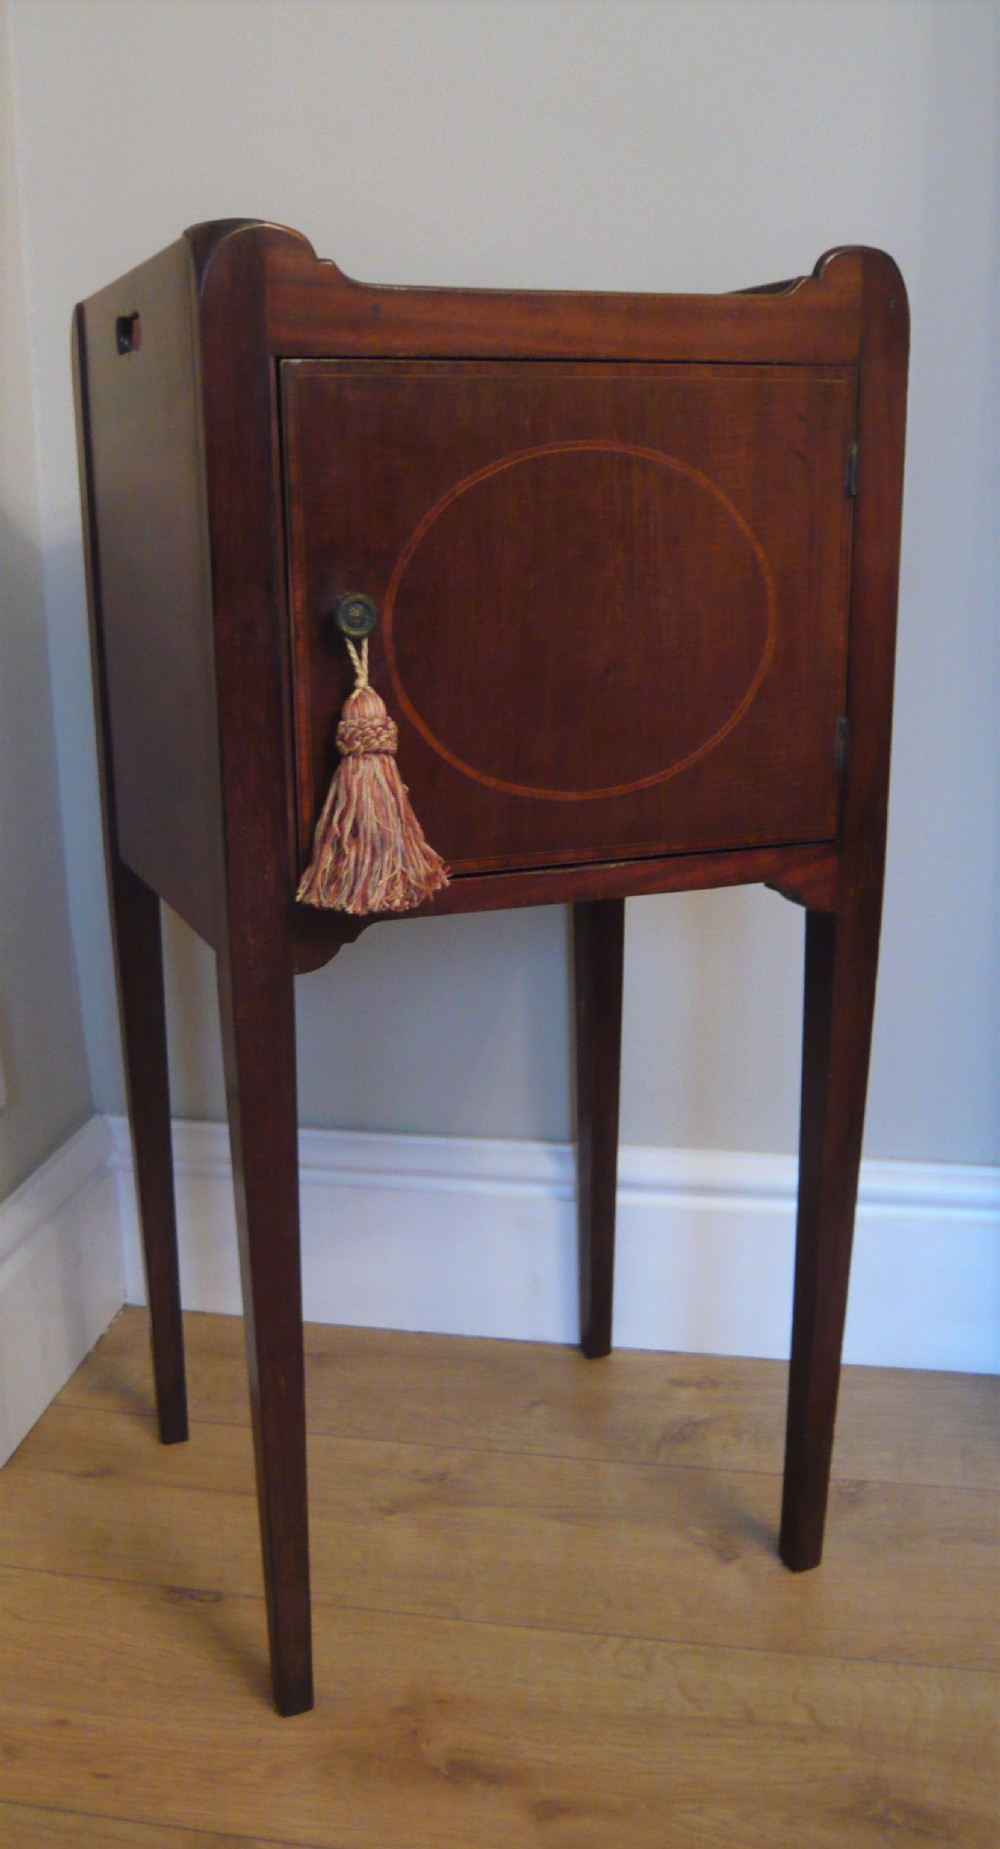 edwardian mahogany inlaid bedside cabinet night stand c1910